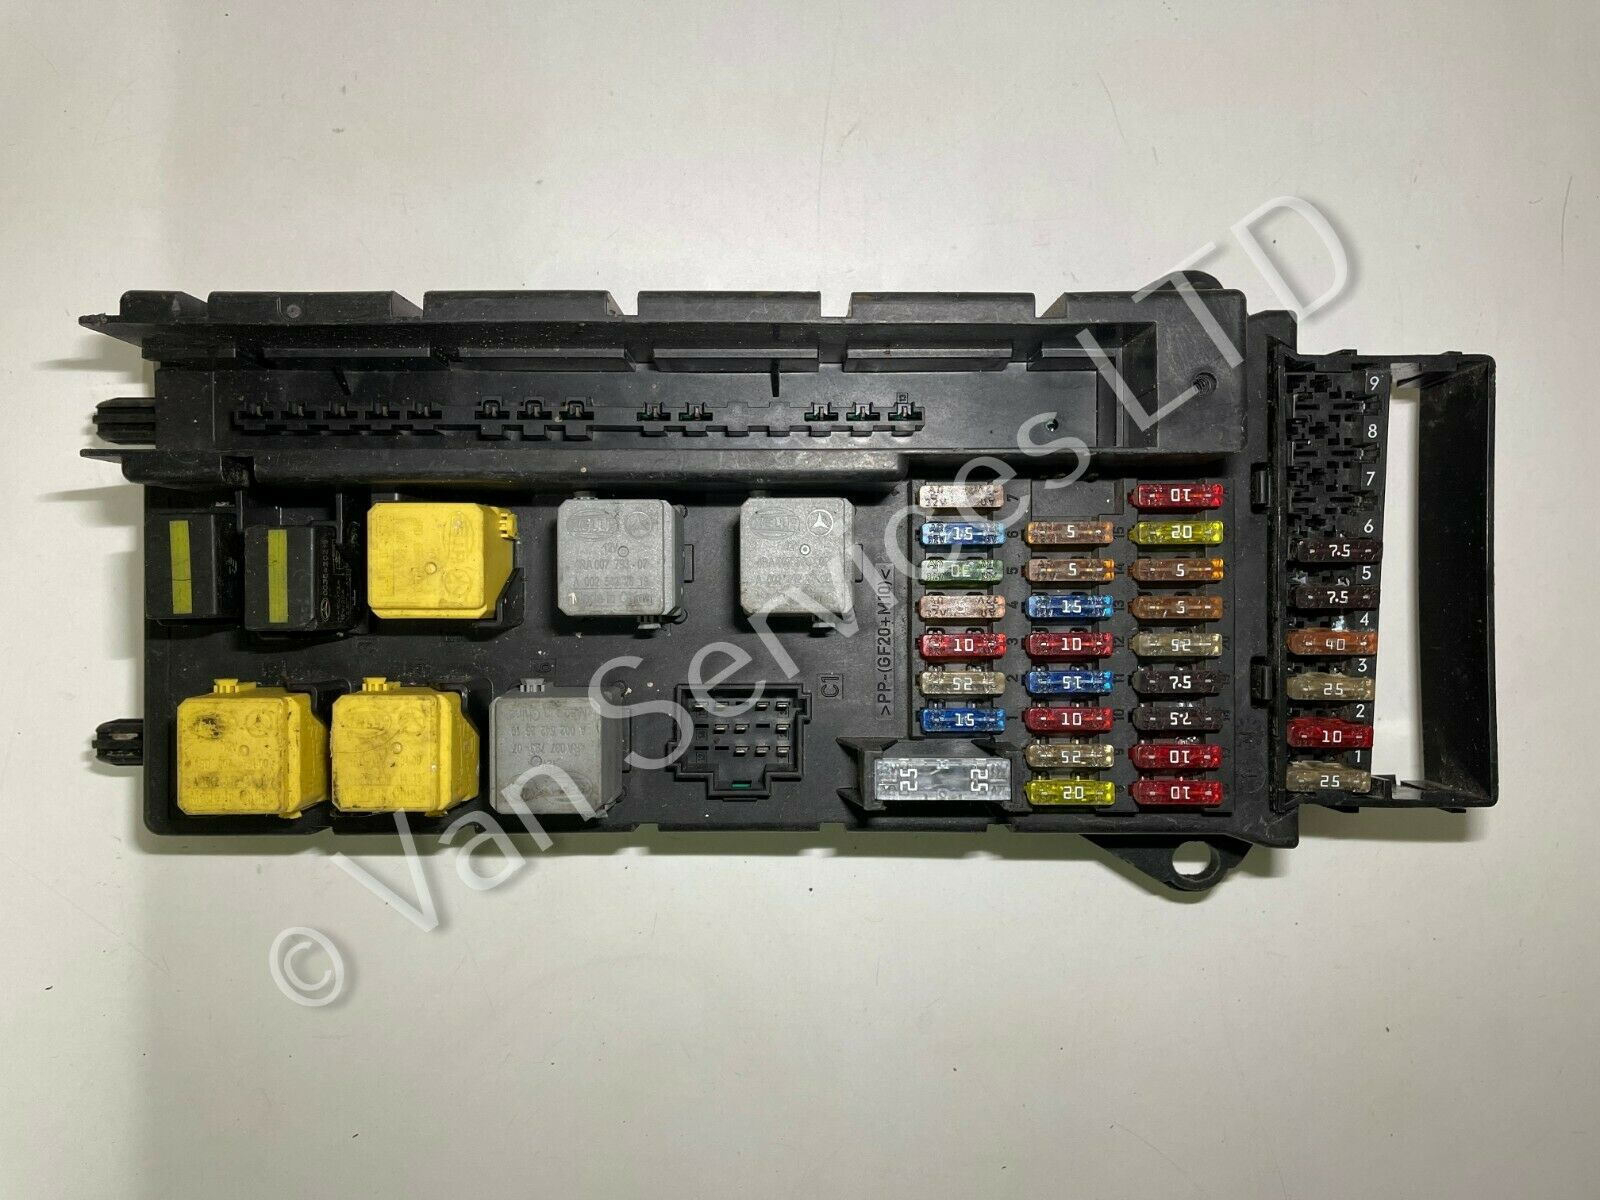 Mercedes Sprinter Crafter Fuse Box Board A 906 545 43 01 Fits 1 Of 1only 4 Available